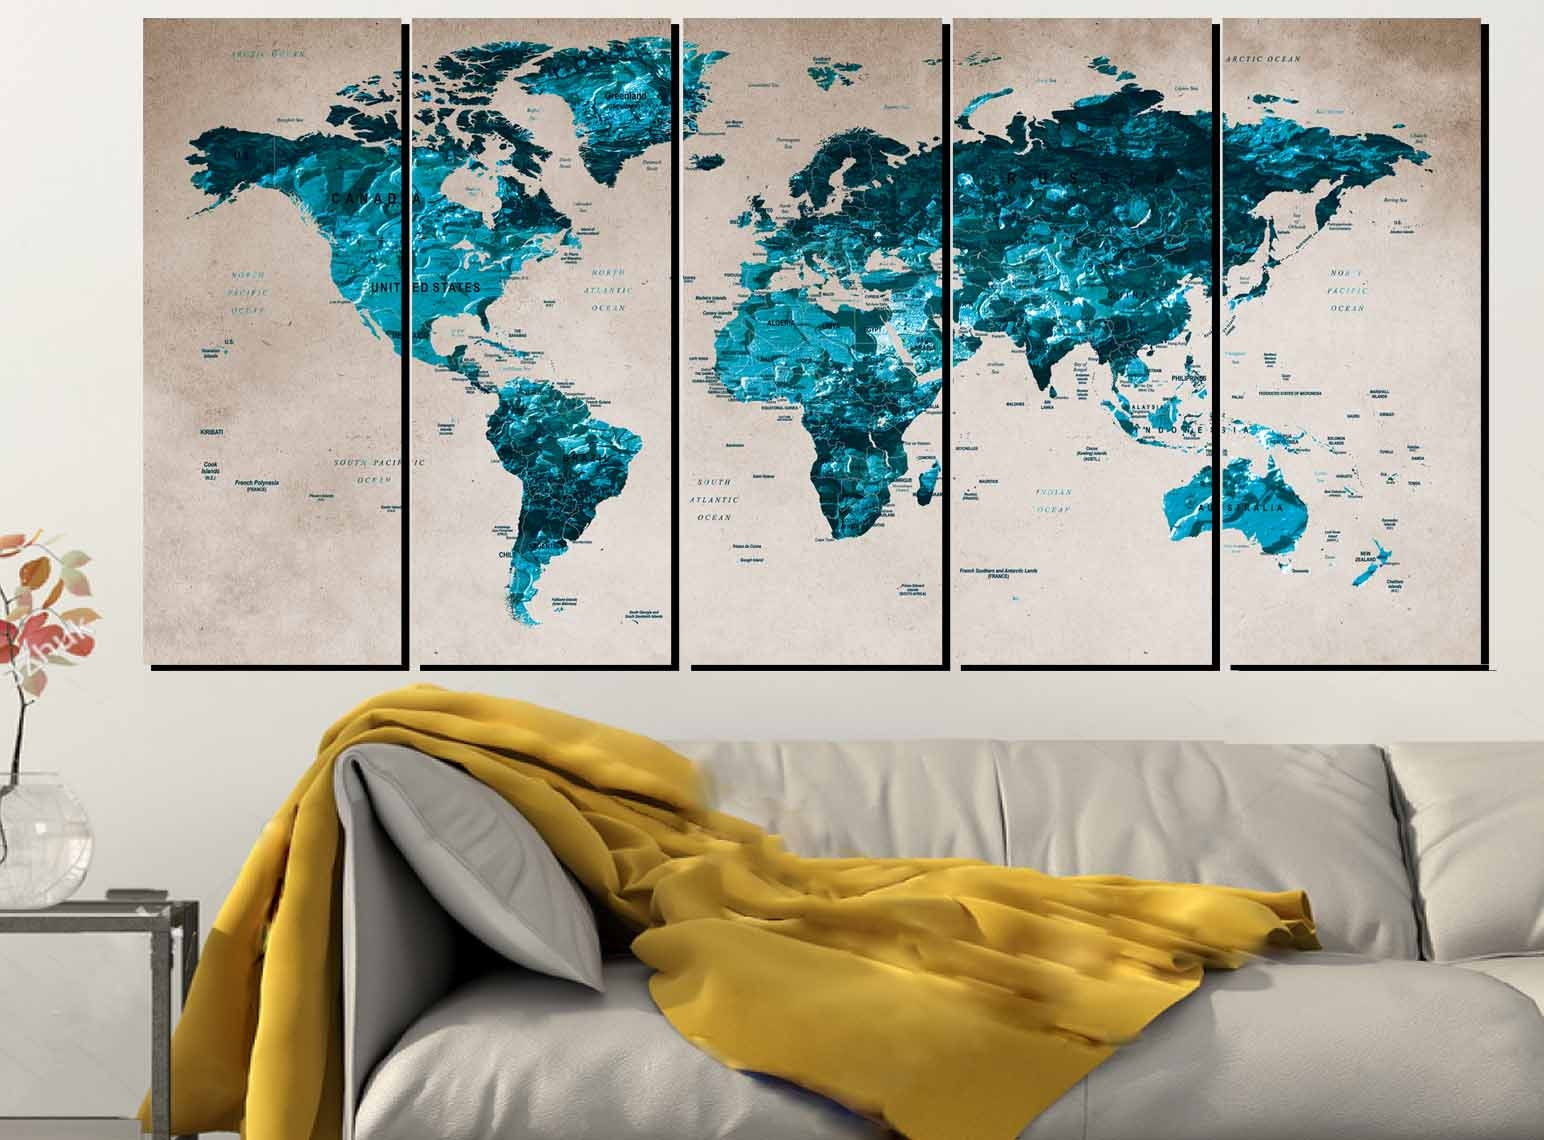 World map blueworld map wall artlarge world mapworld map canvas decalworld map abstract gallery photo gallery photo gallery photo gallery photo gallery photo gumiabroncs Images